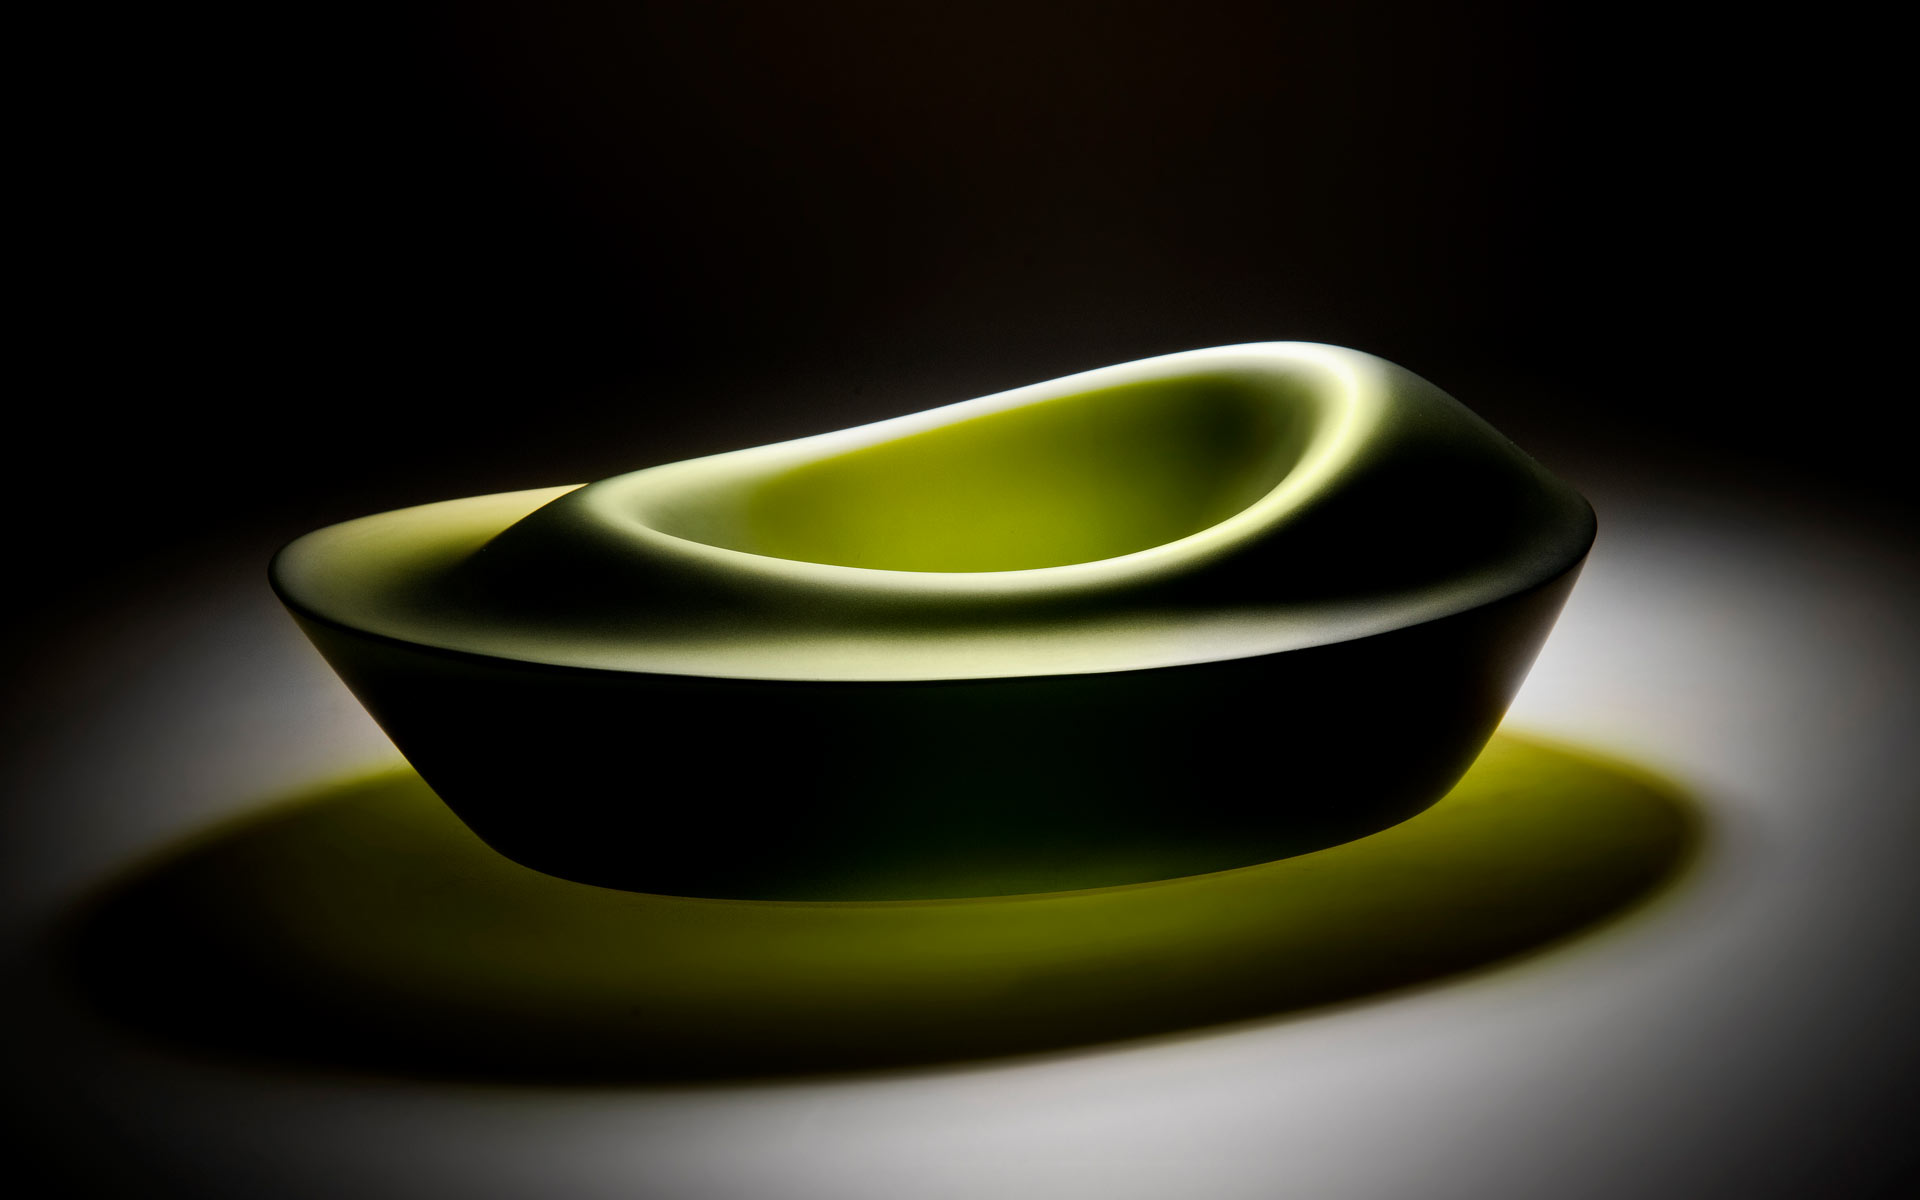 Ripple Series - Green Bowl Form